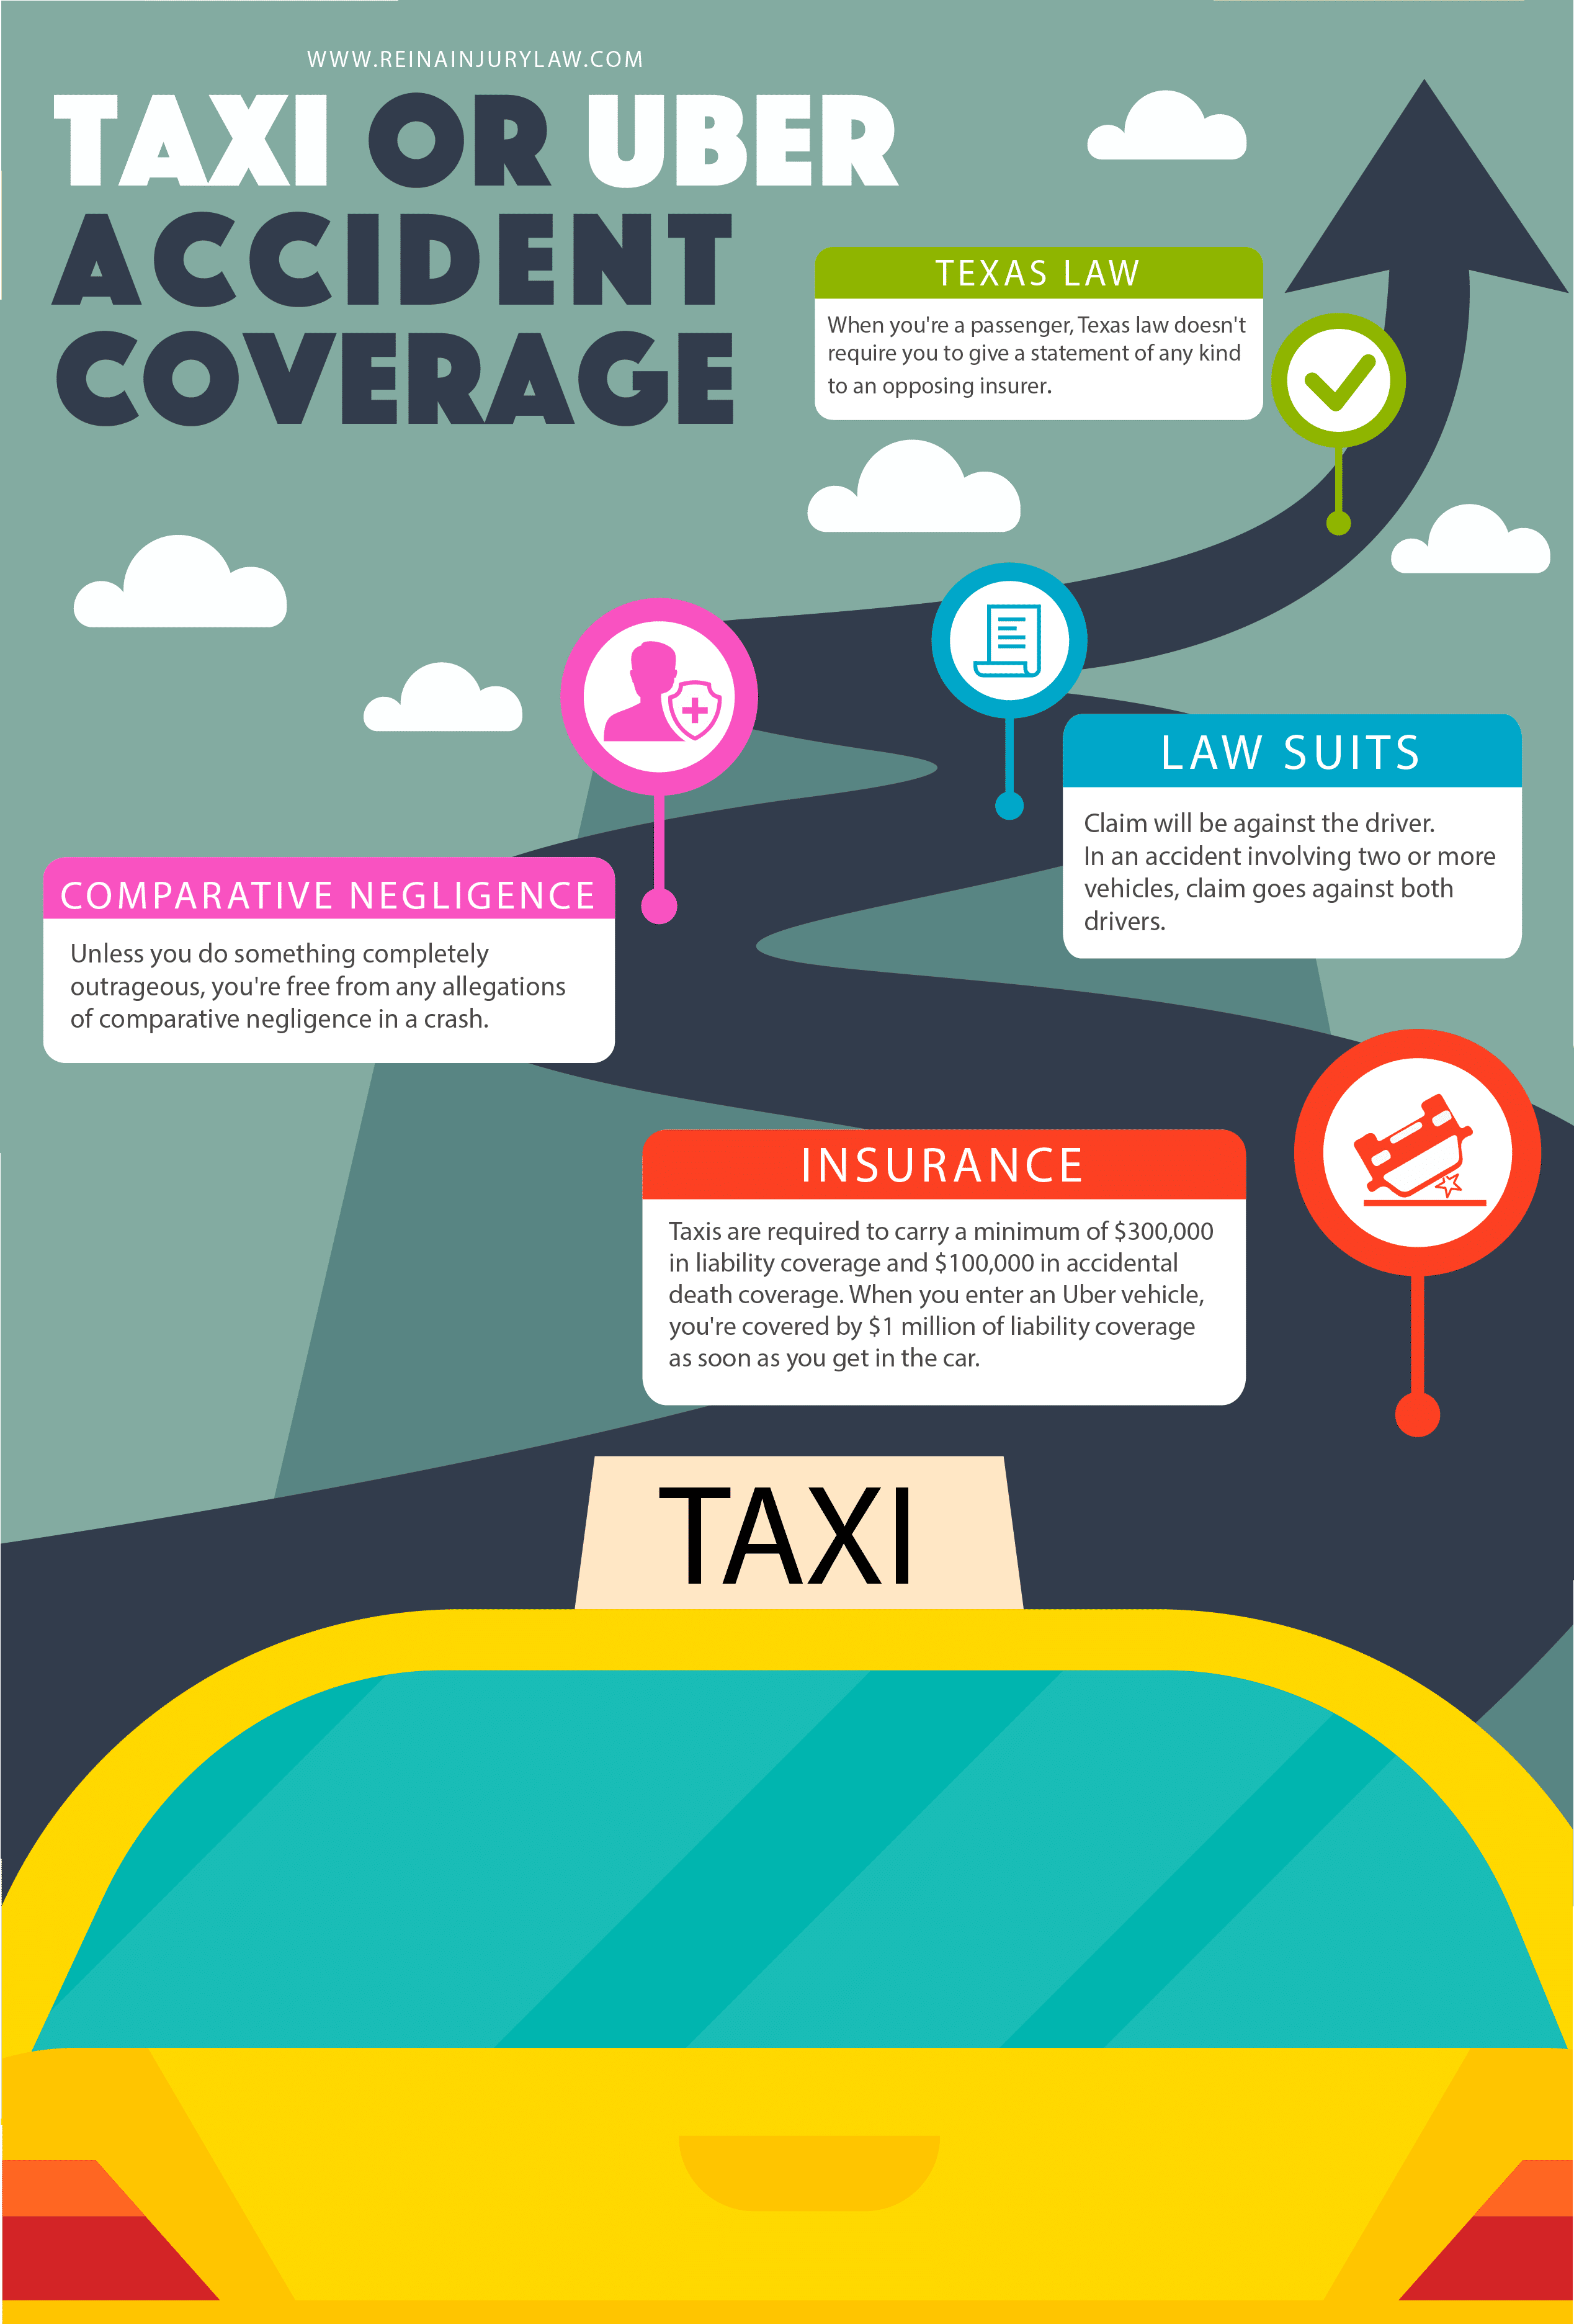 taxi-uber-accident